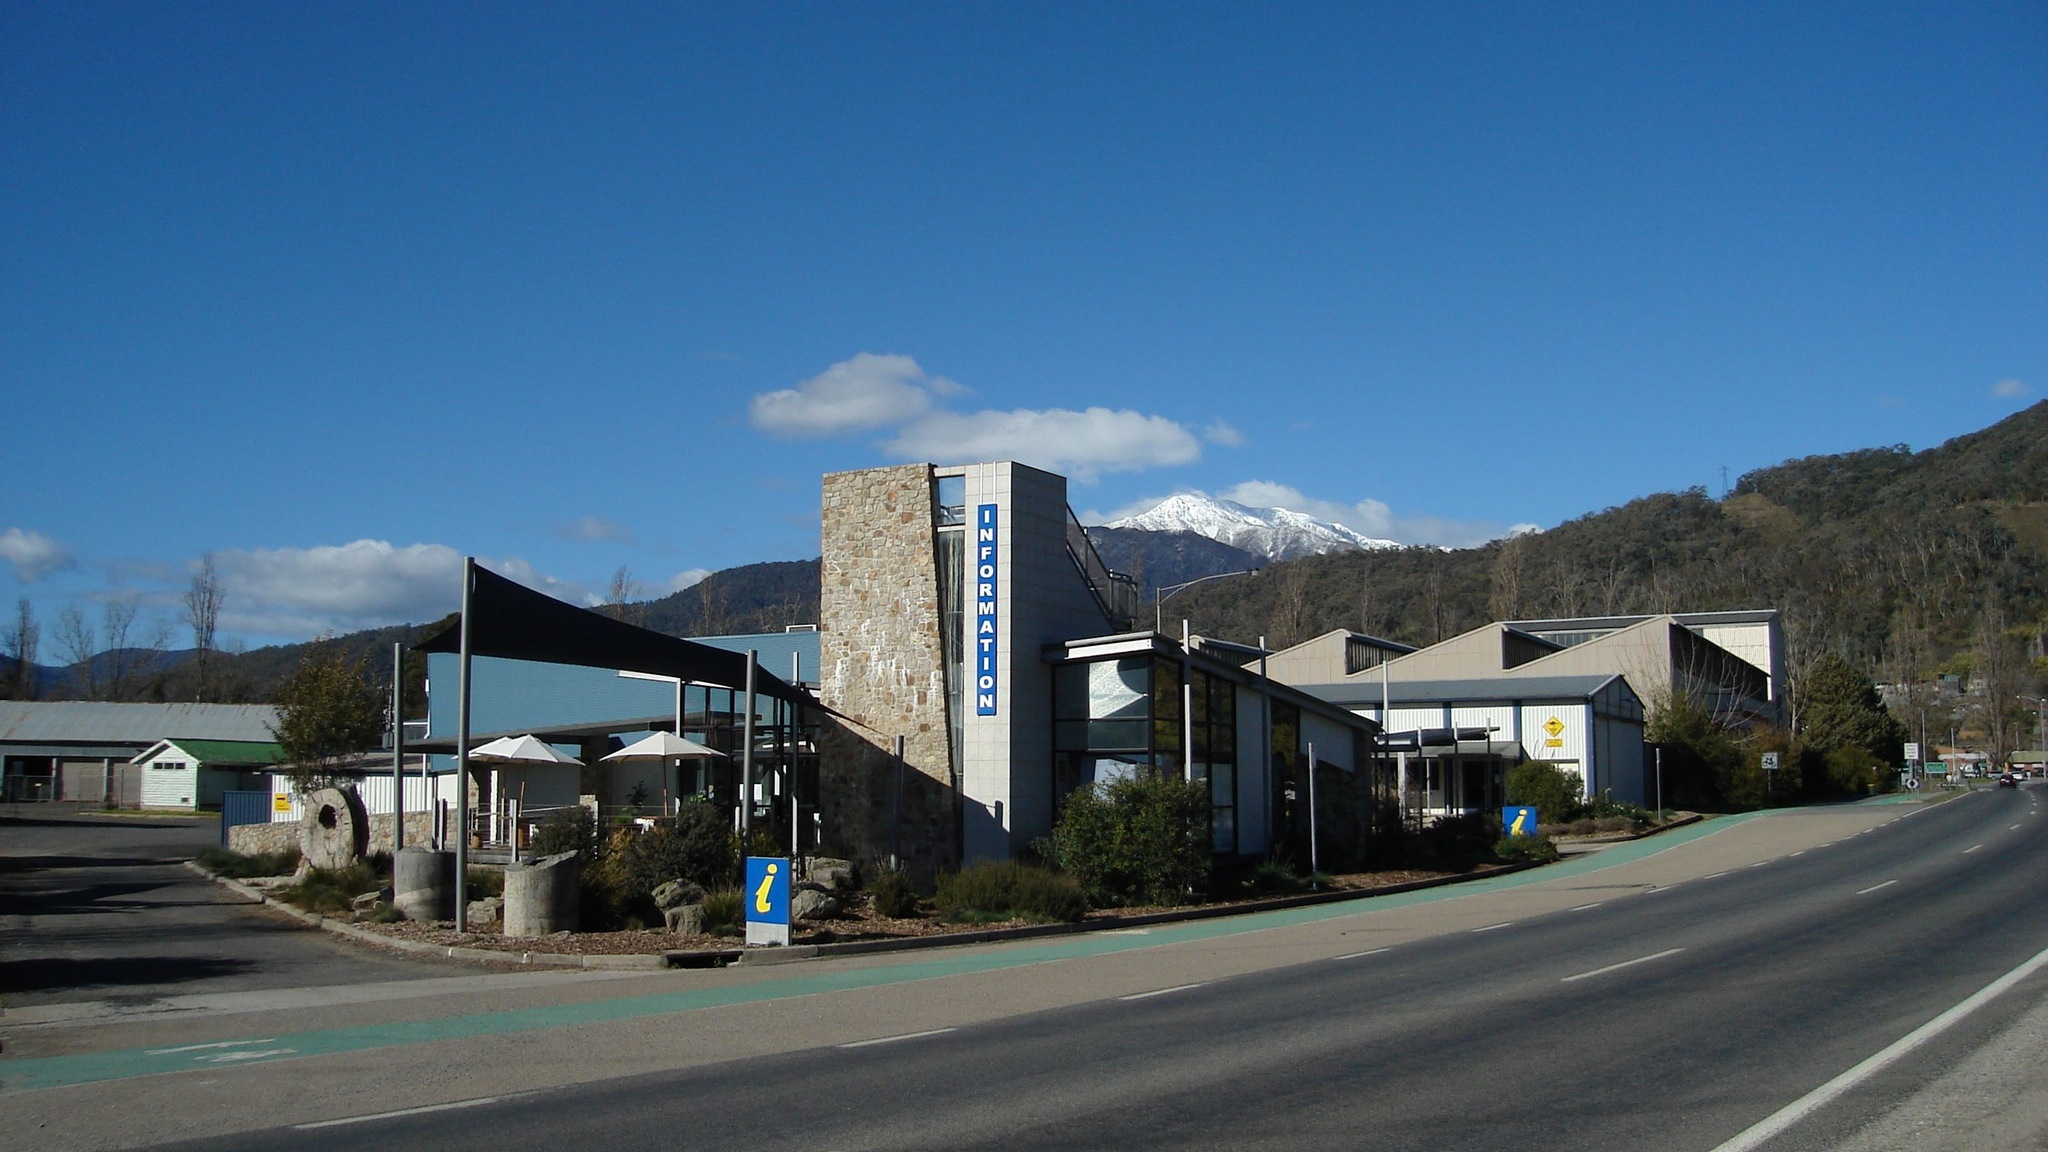 Mount Beauty Visitor Information Centre